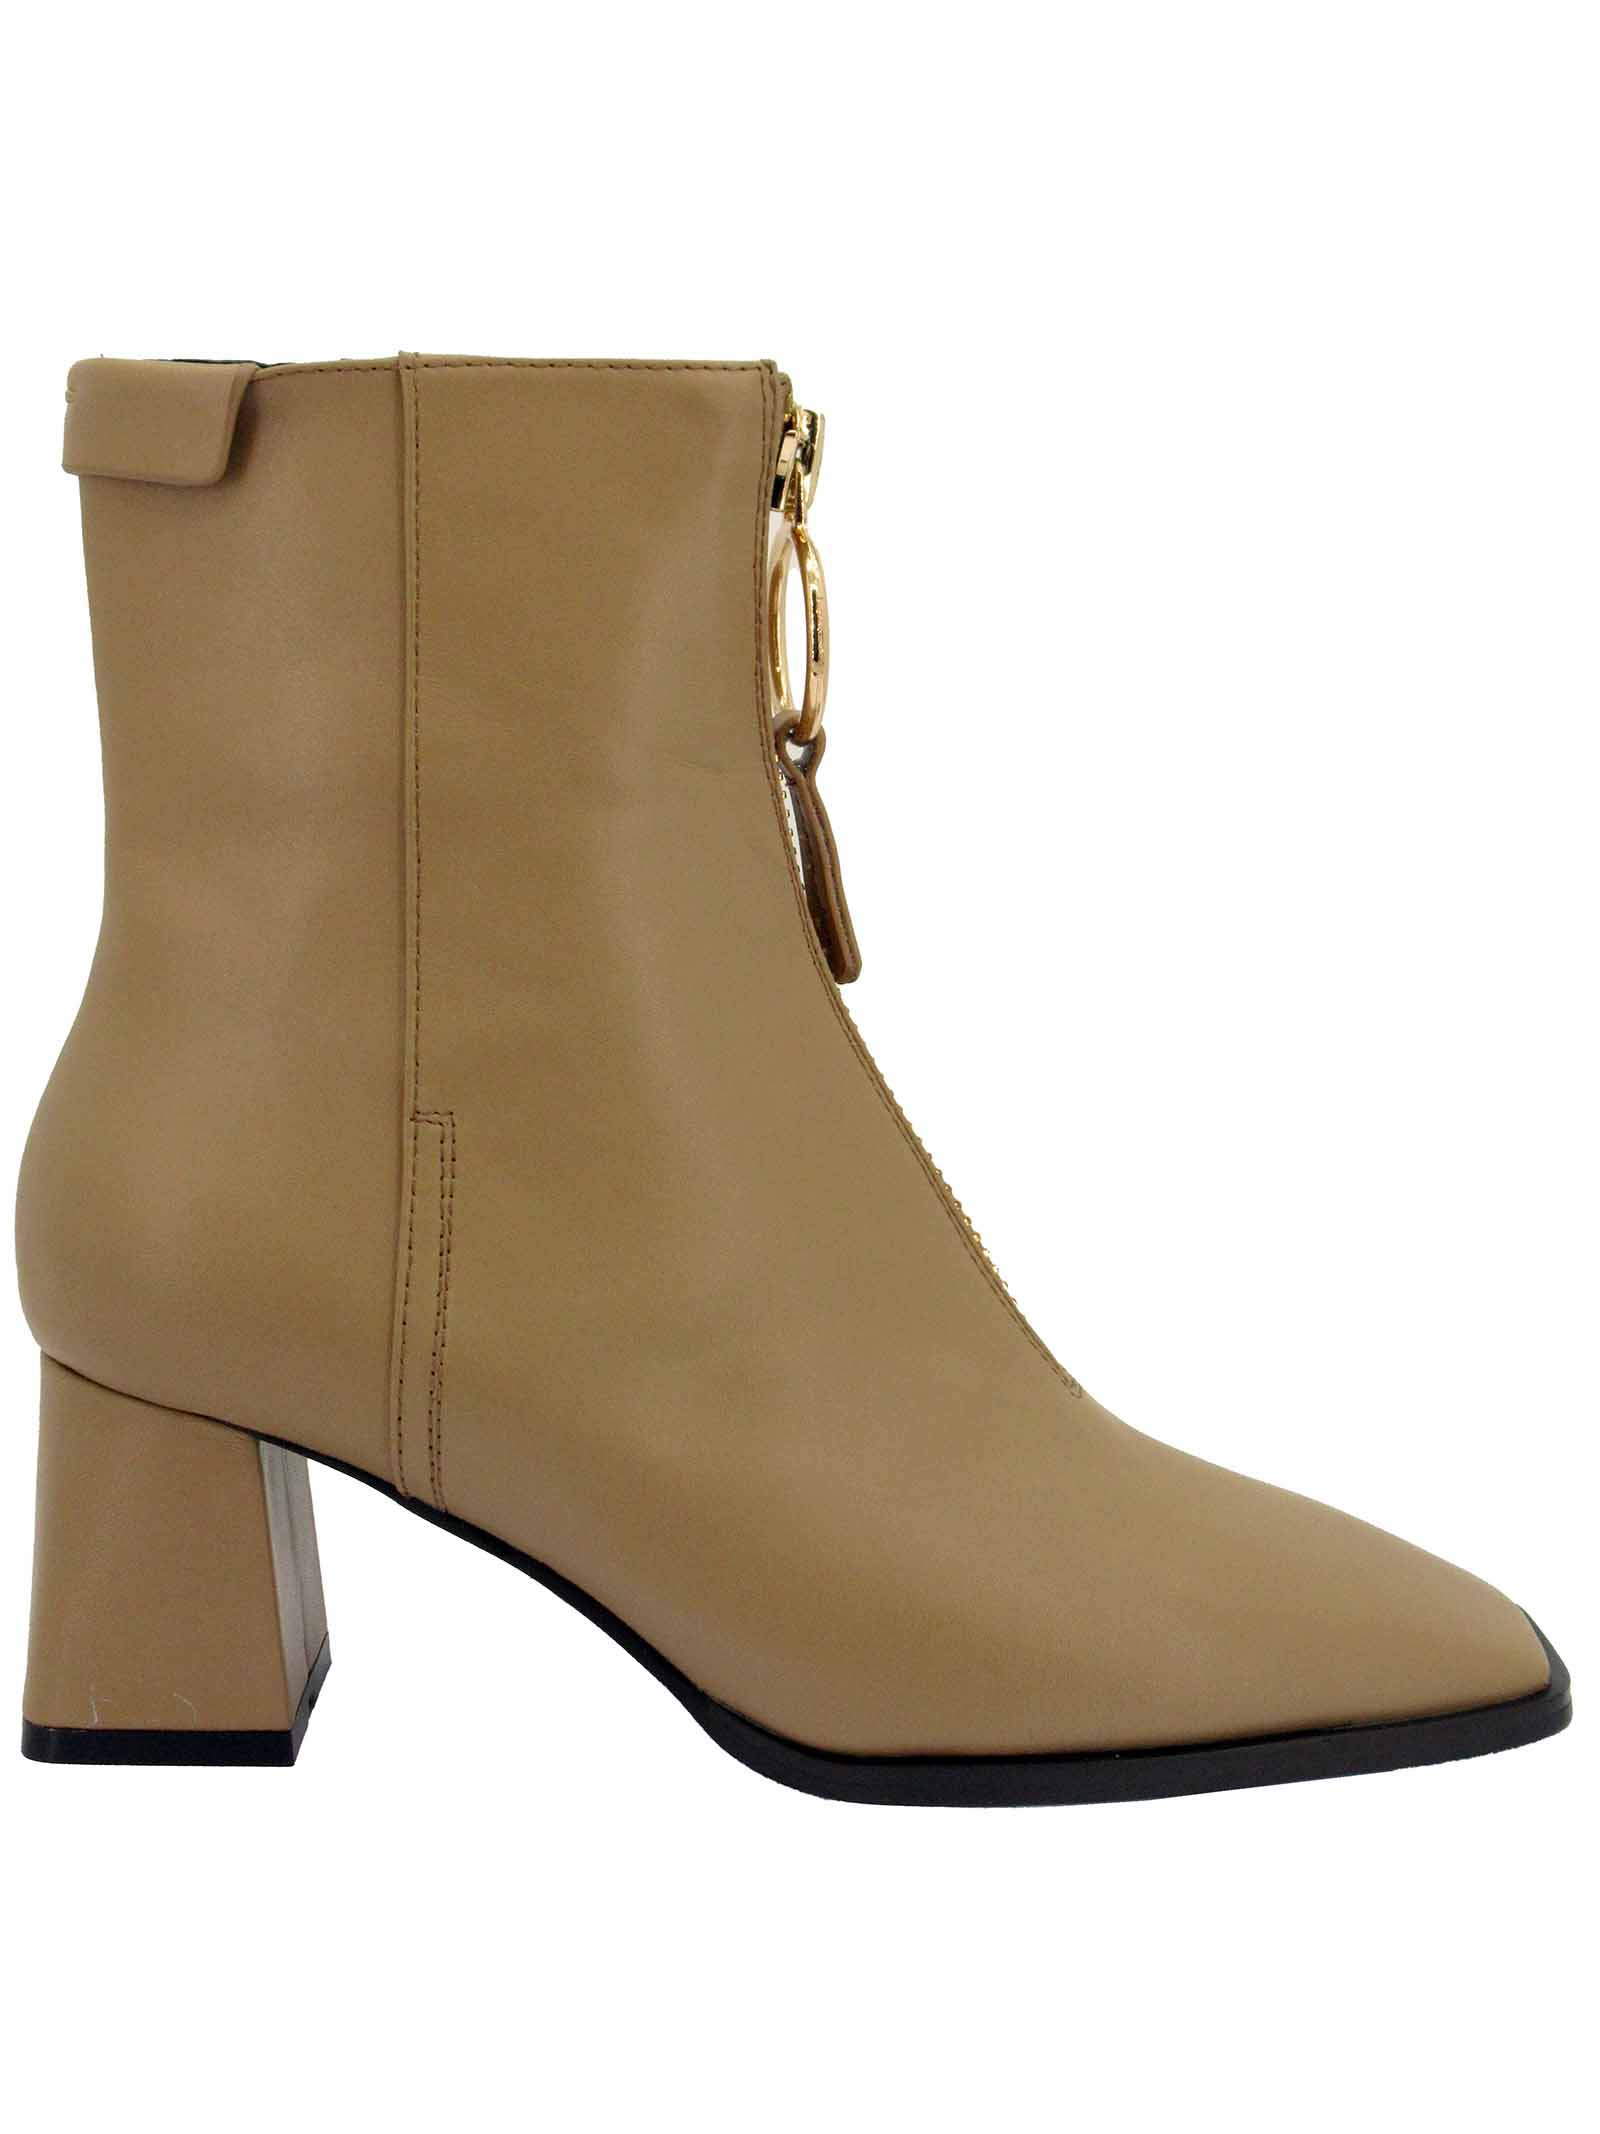 Women's Ankle Boots in Camel Leather with Gold Zip Square Toe and Matching Wide Heel Lola Cruz | Ankle Boots | 093T10BK025